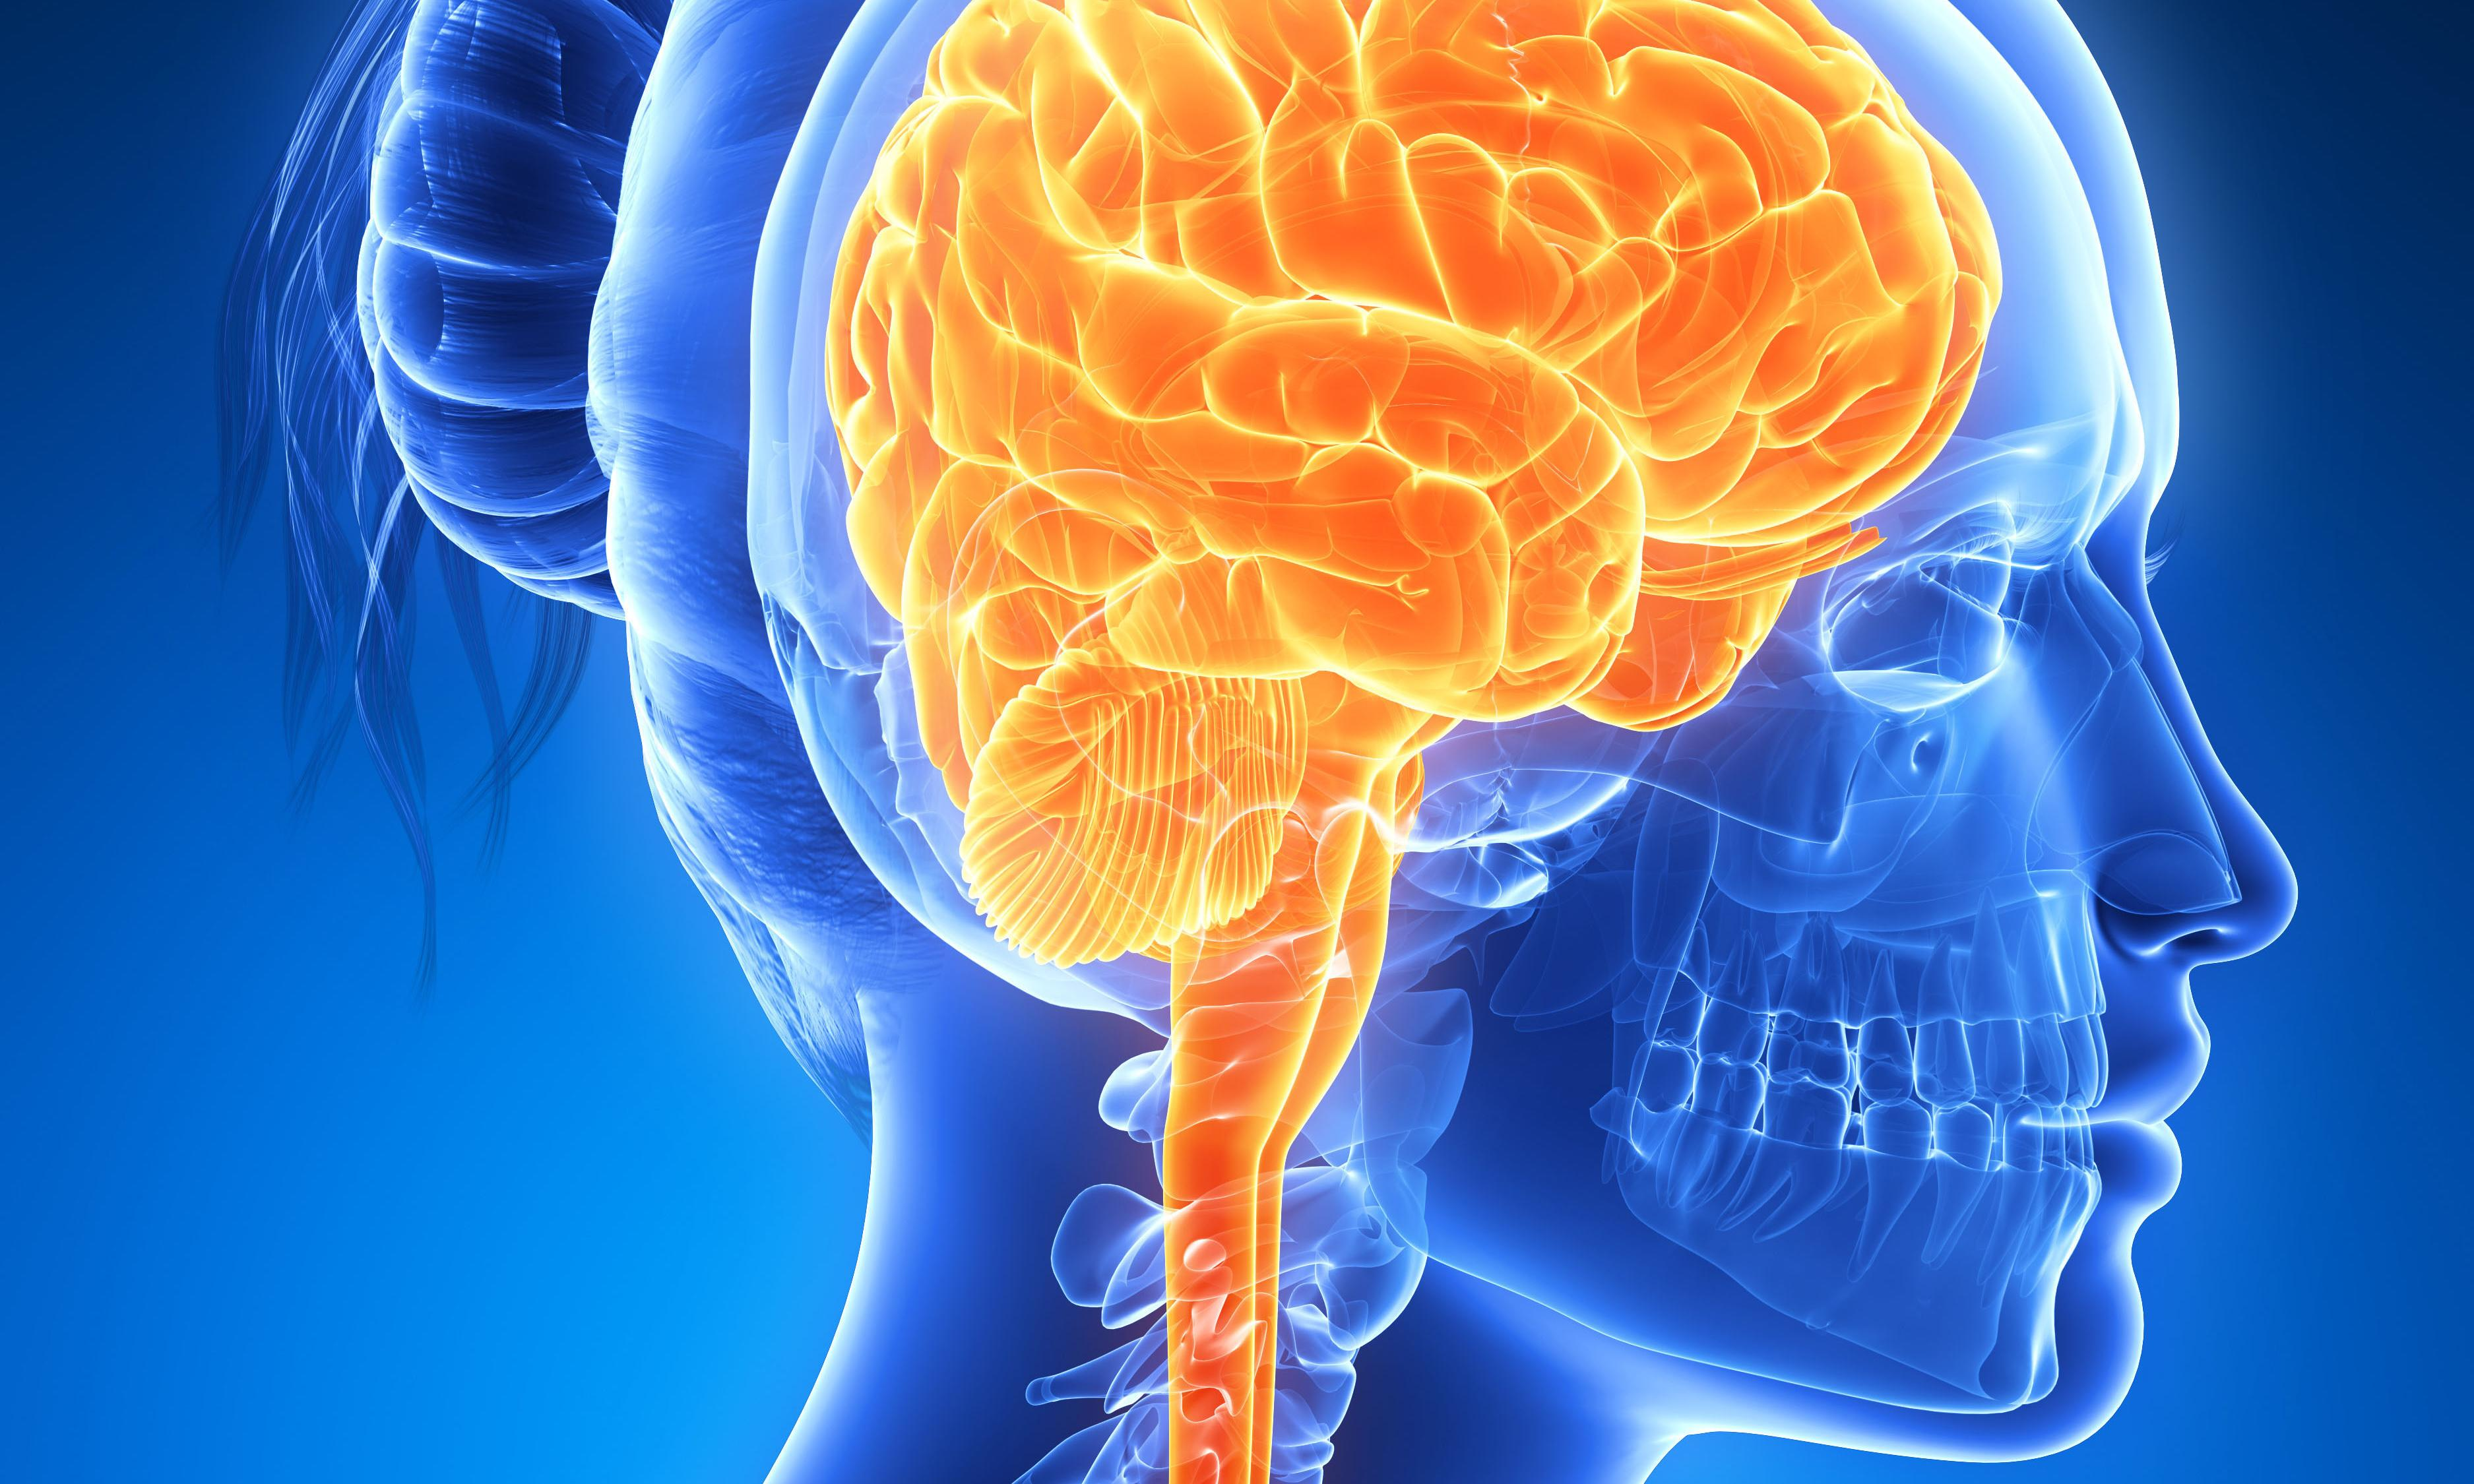 Enough of the neurosexist bilge. It's not all pink and blue when it comes to our brains